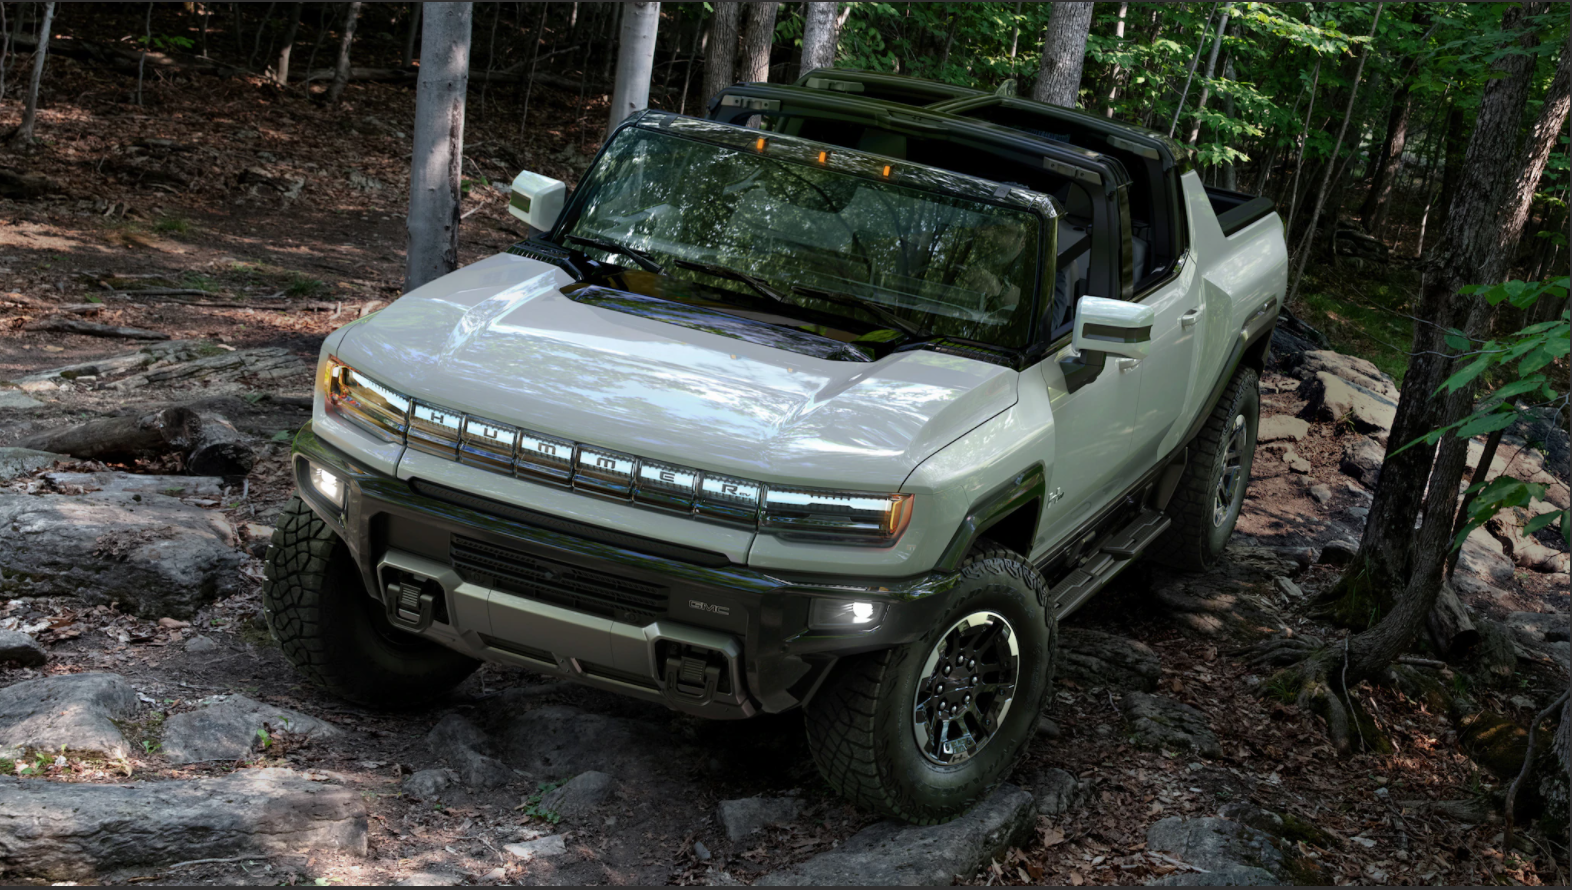 The GMC Hummer can go offroad anywhere